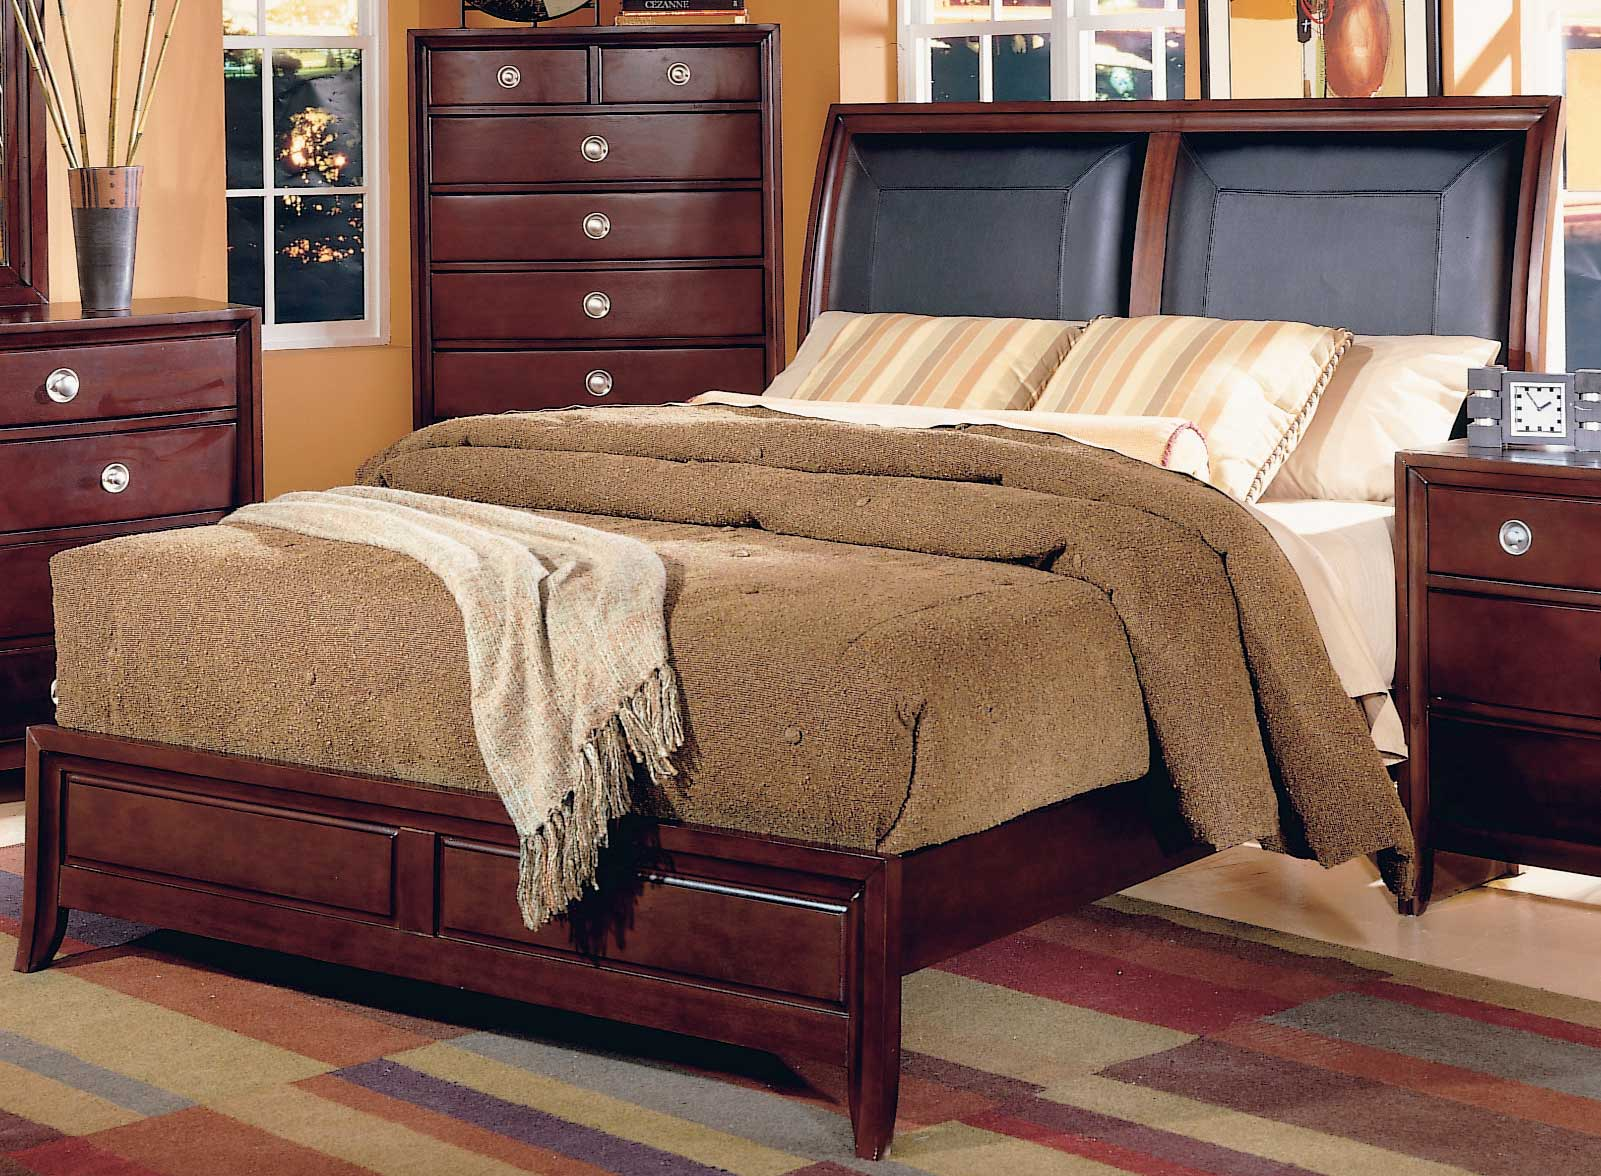 Bed headboard leather - Homelegance Capria Sleigh Bed Leather Headboard 878ll 1